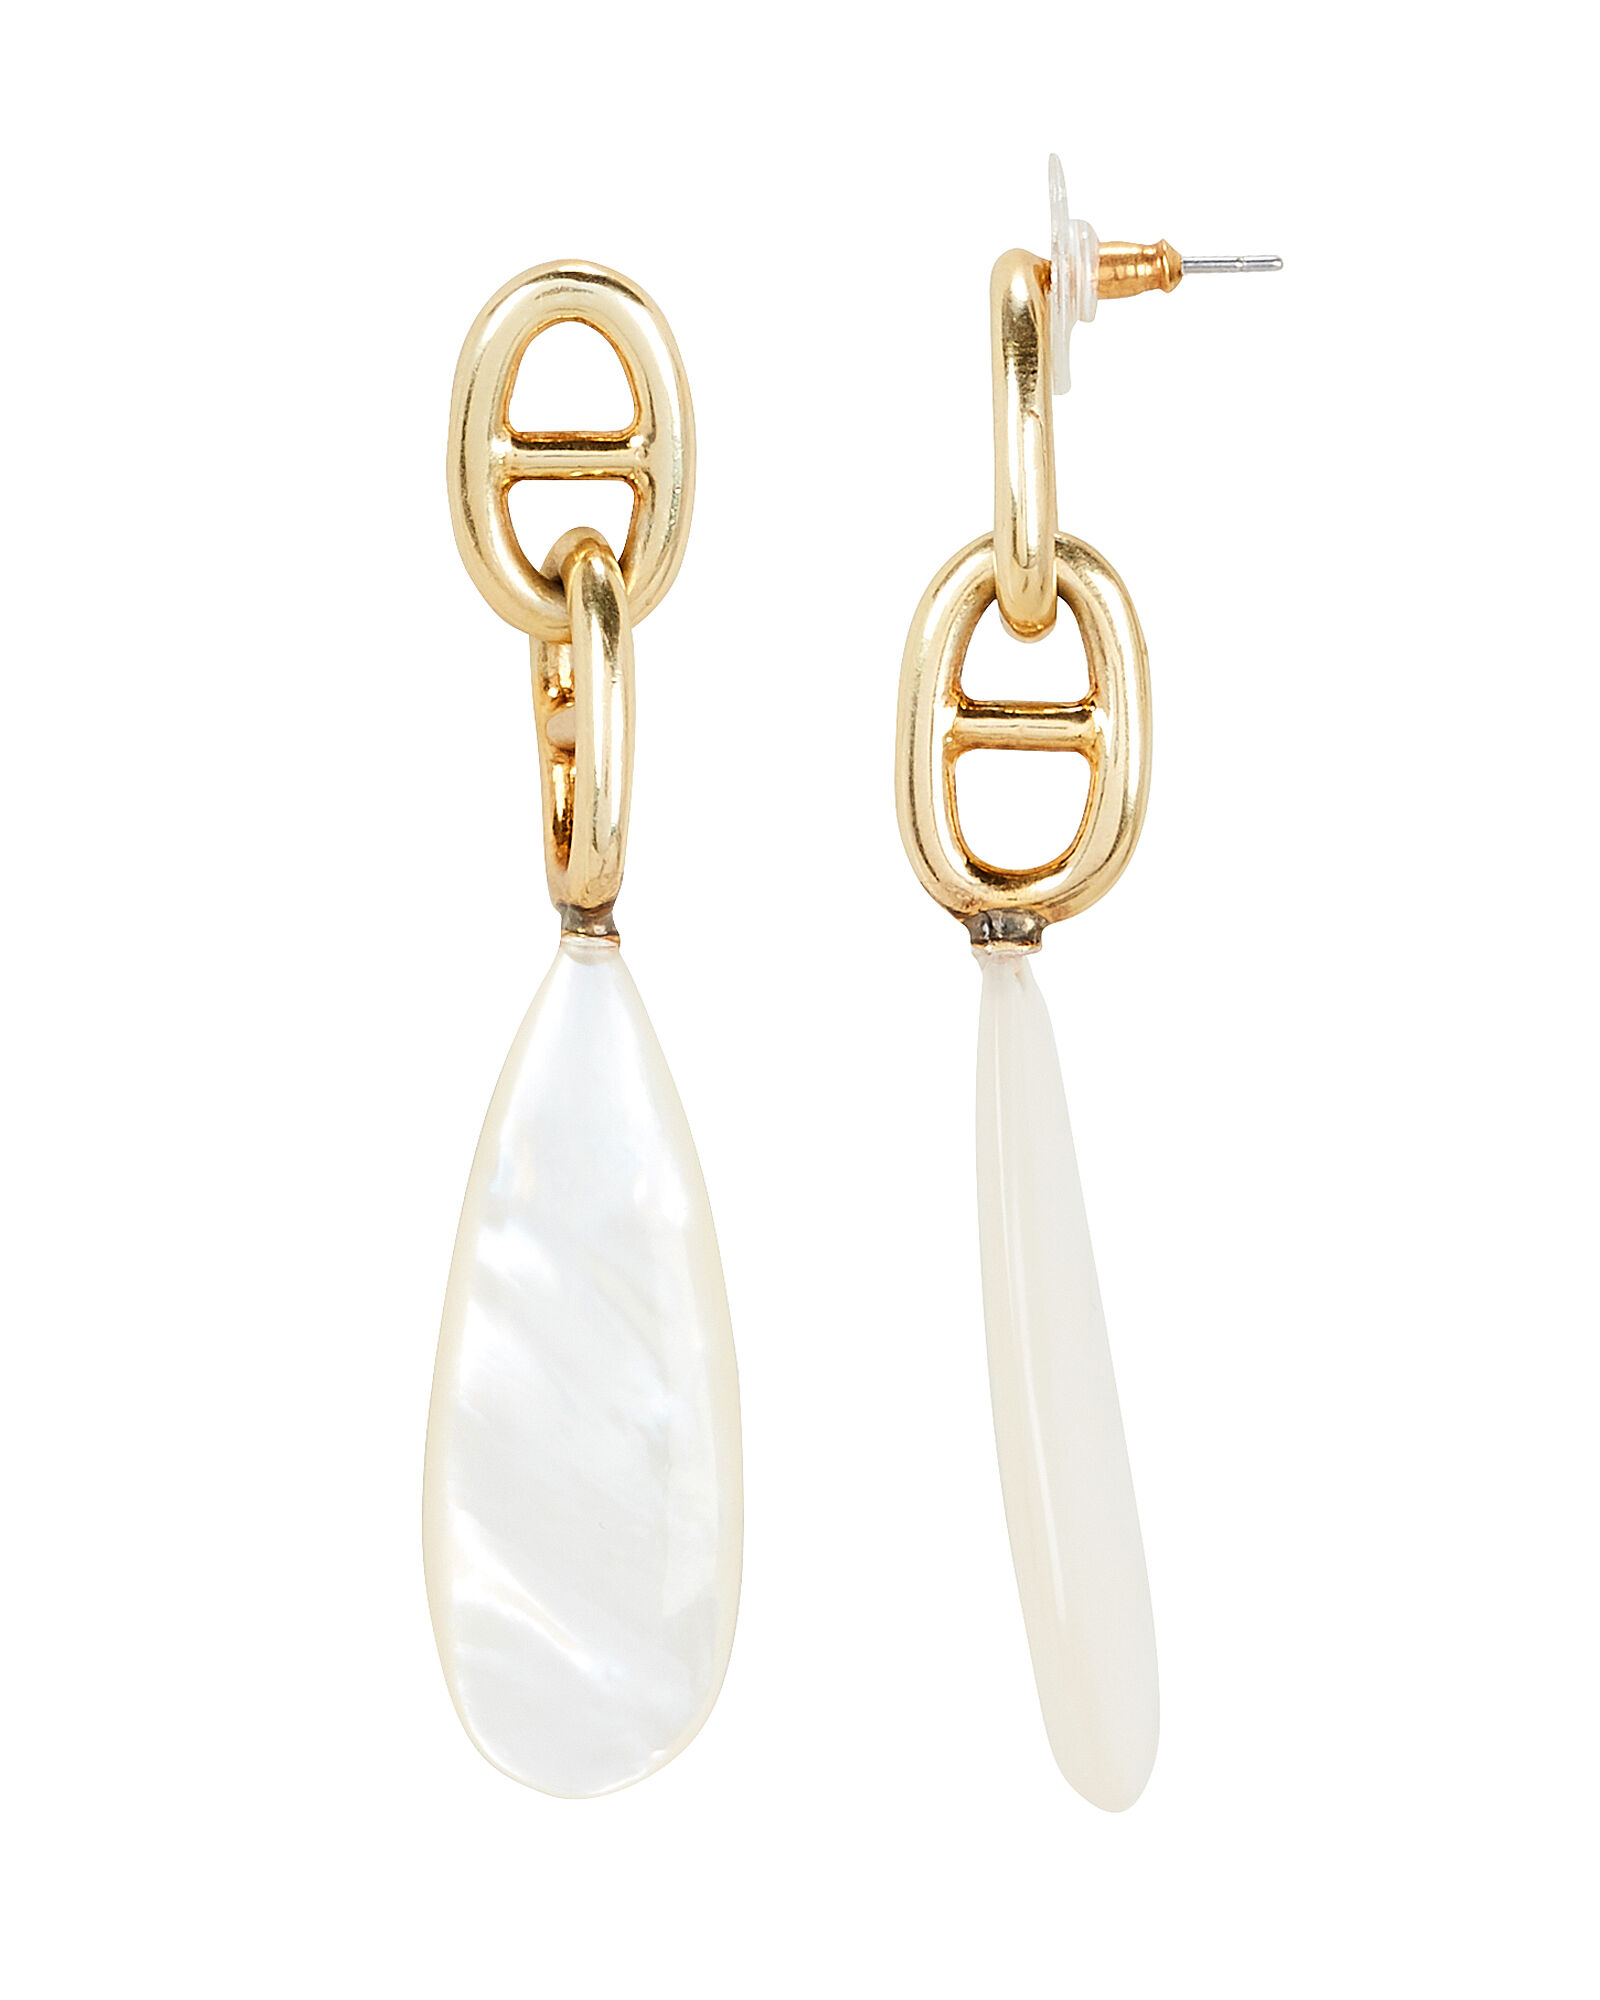 Grotto Drop Earrings, GOLD/PEARL, hi-res